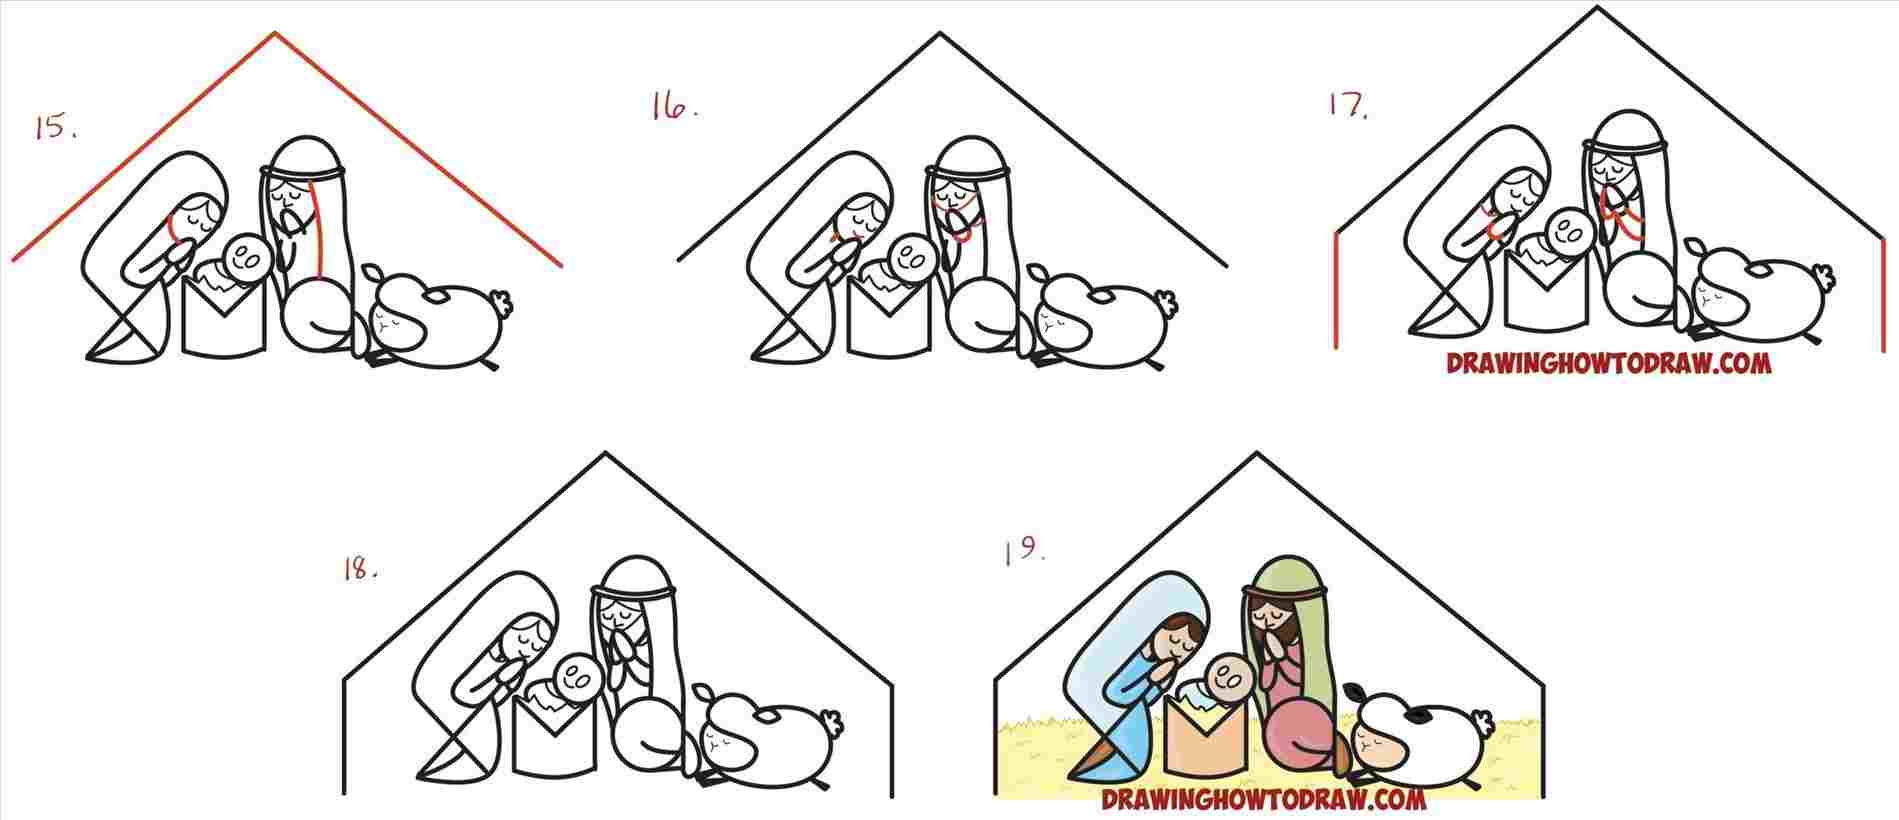 hight resolution of 1899x820 clip art on clipart rhclipartlibrarycom free jesus drawing jesus drawing for kids